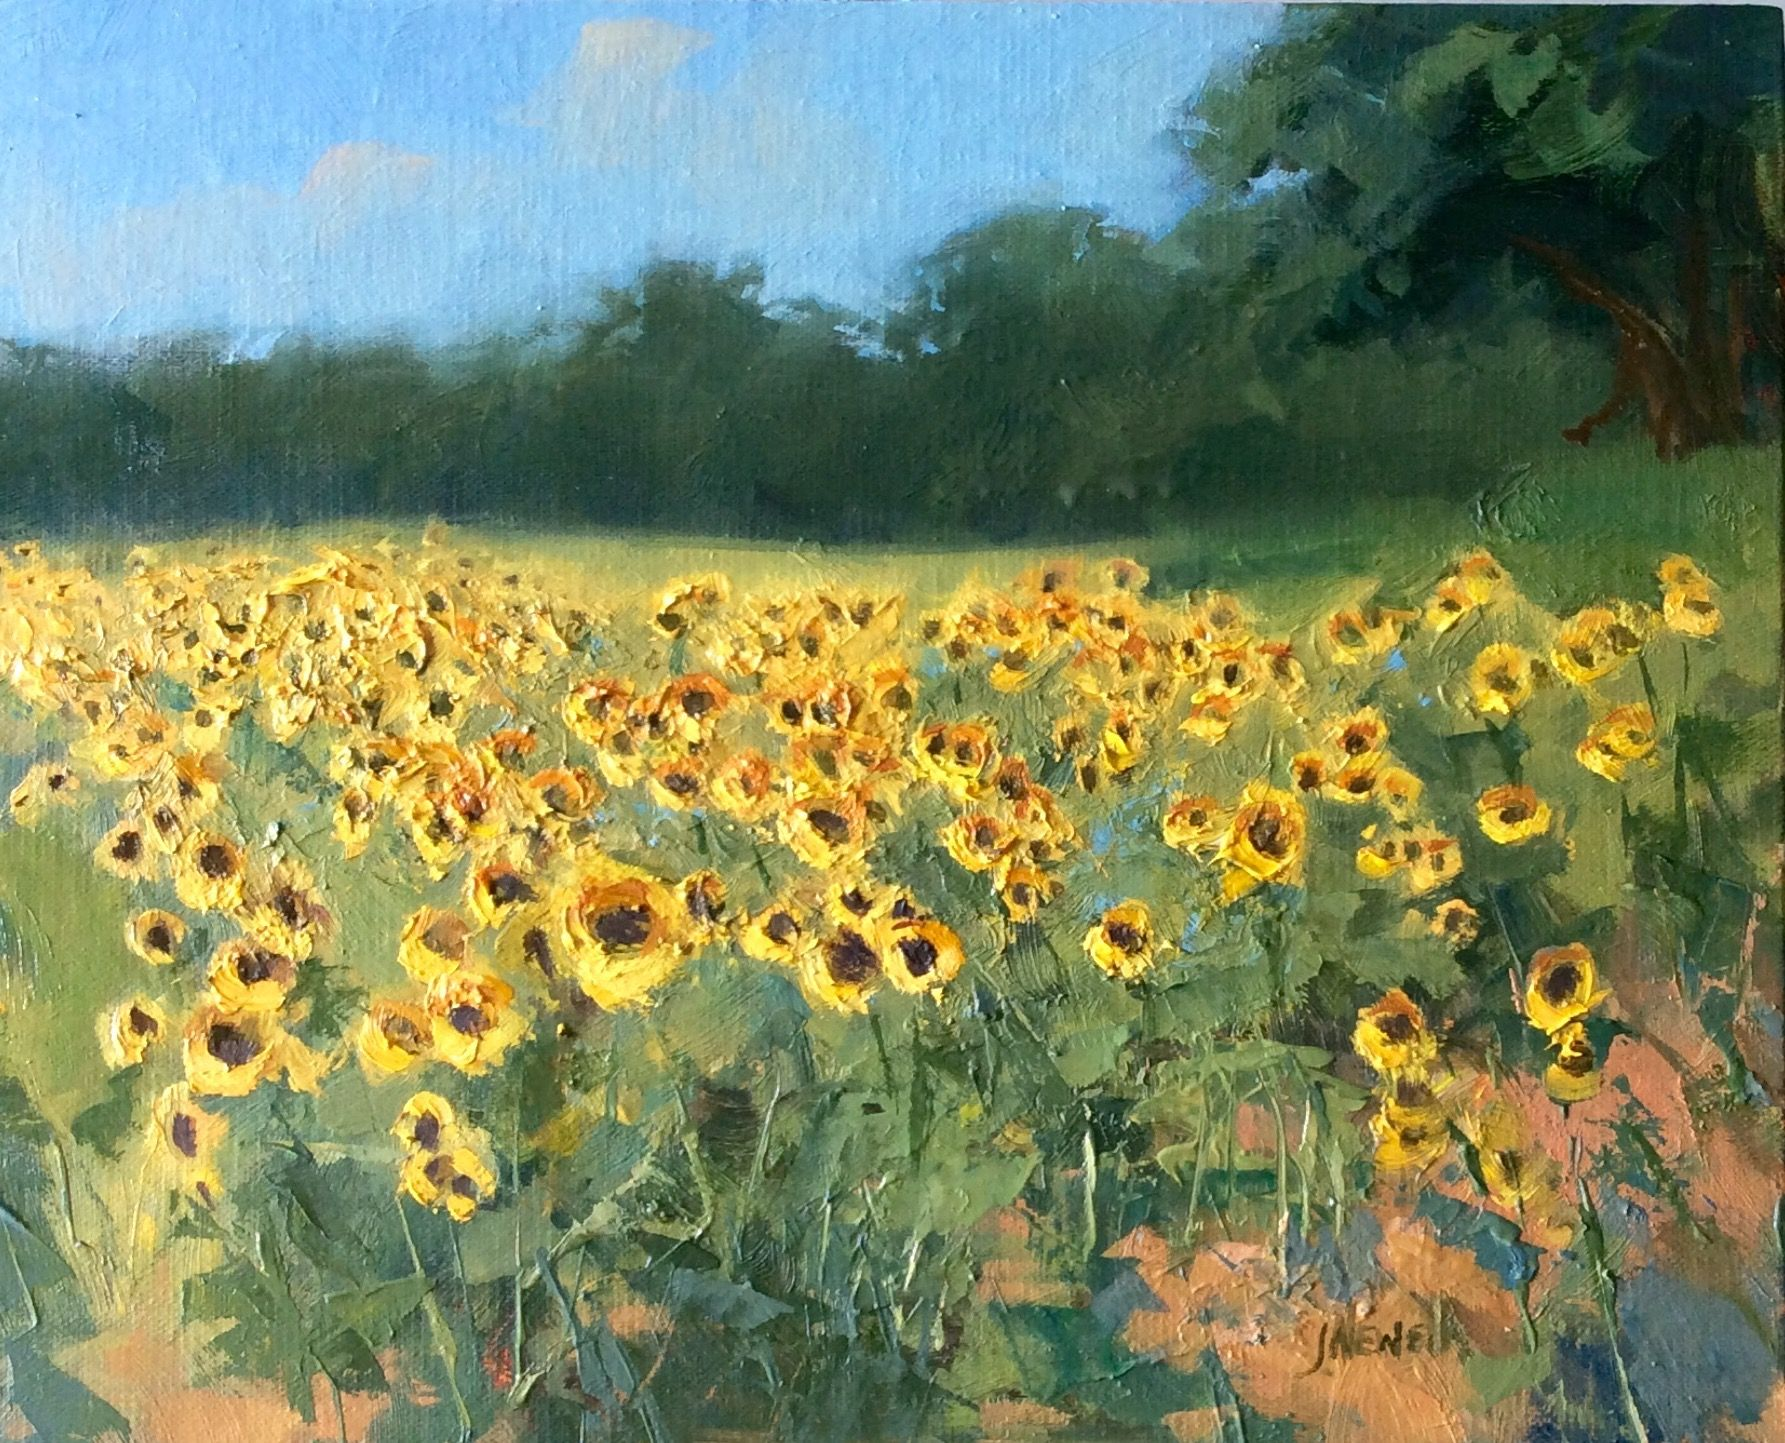 Sold Sunflower Field Oil Painting By Jacki Newell 8x10 525 Www